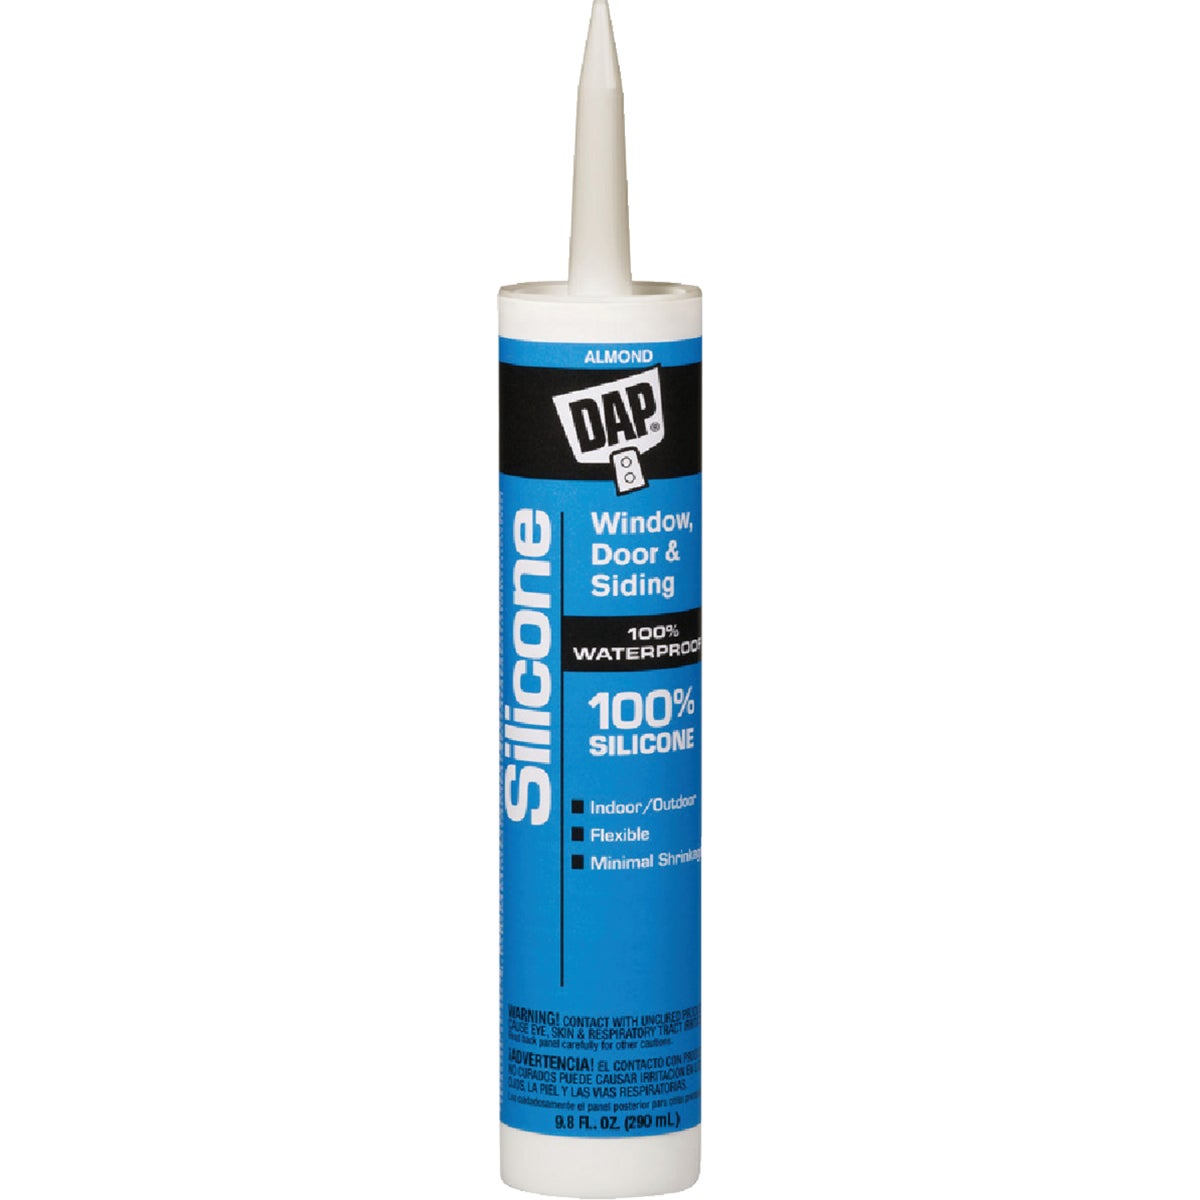 ALMOND SILICONE SEALANT - 08649 by Dap Inc